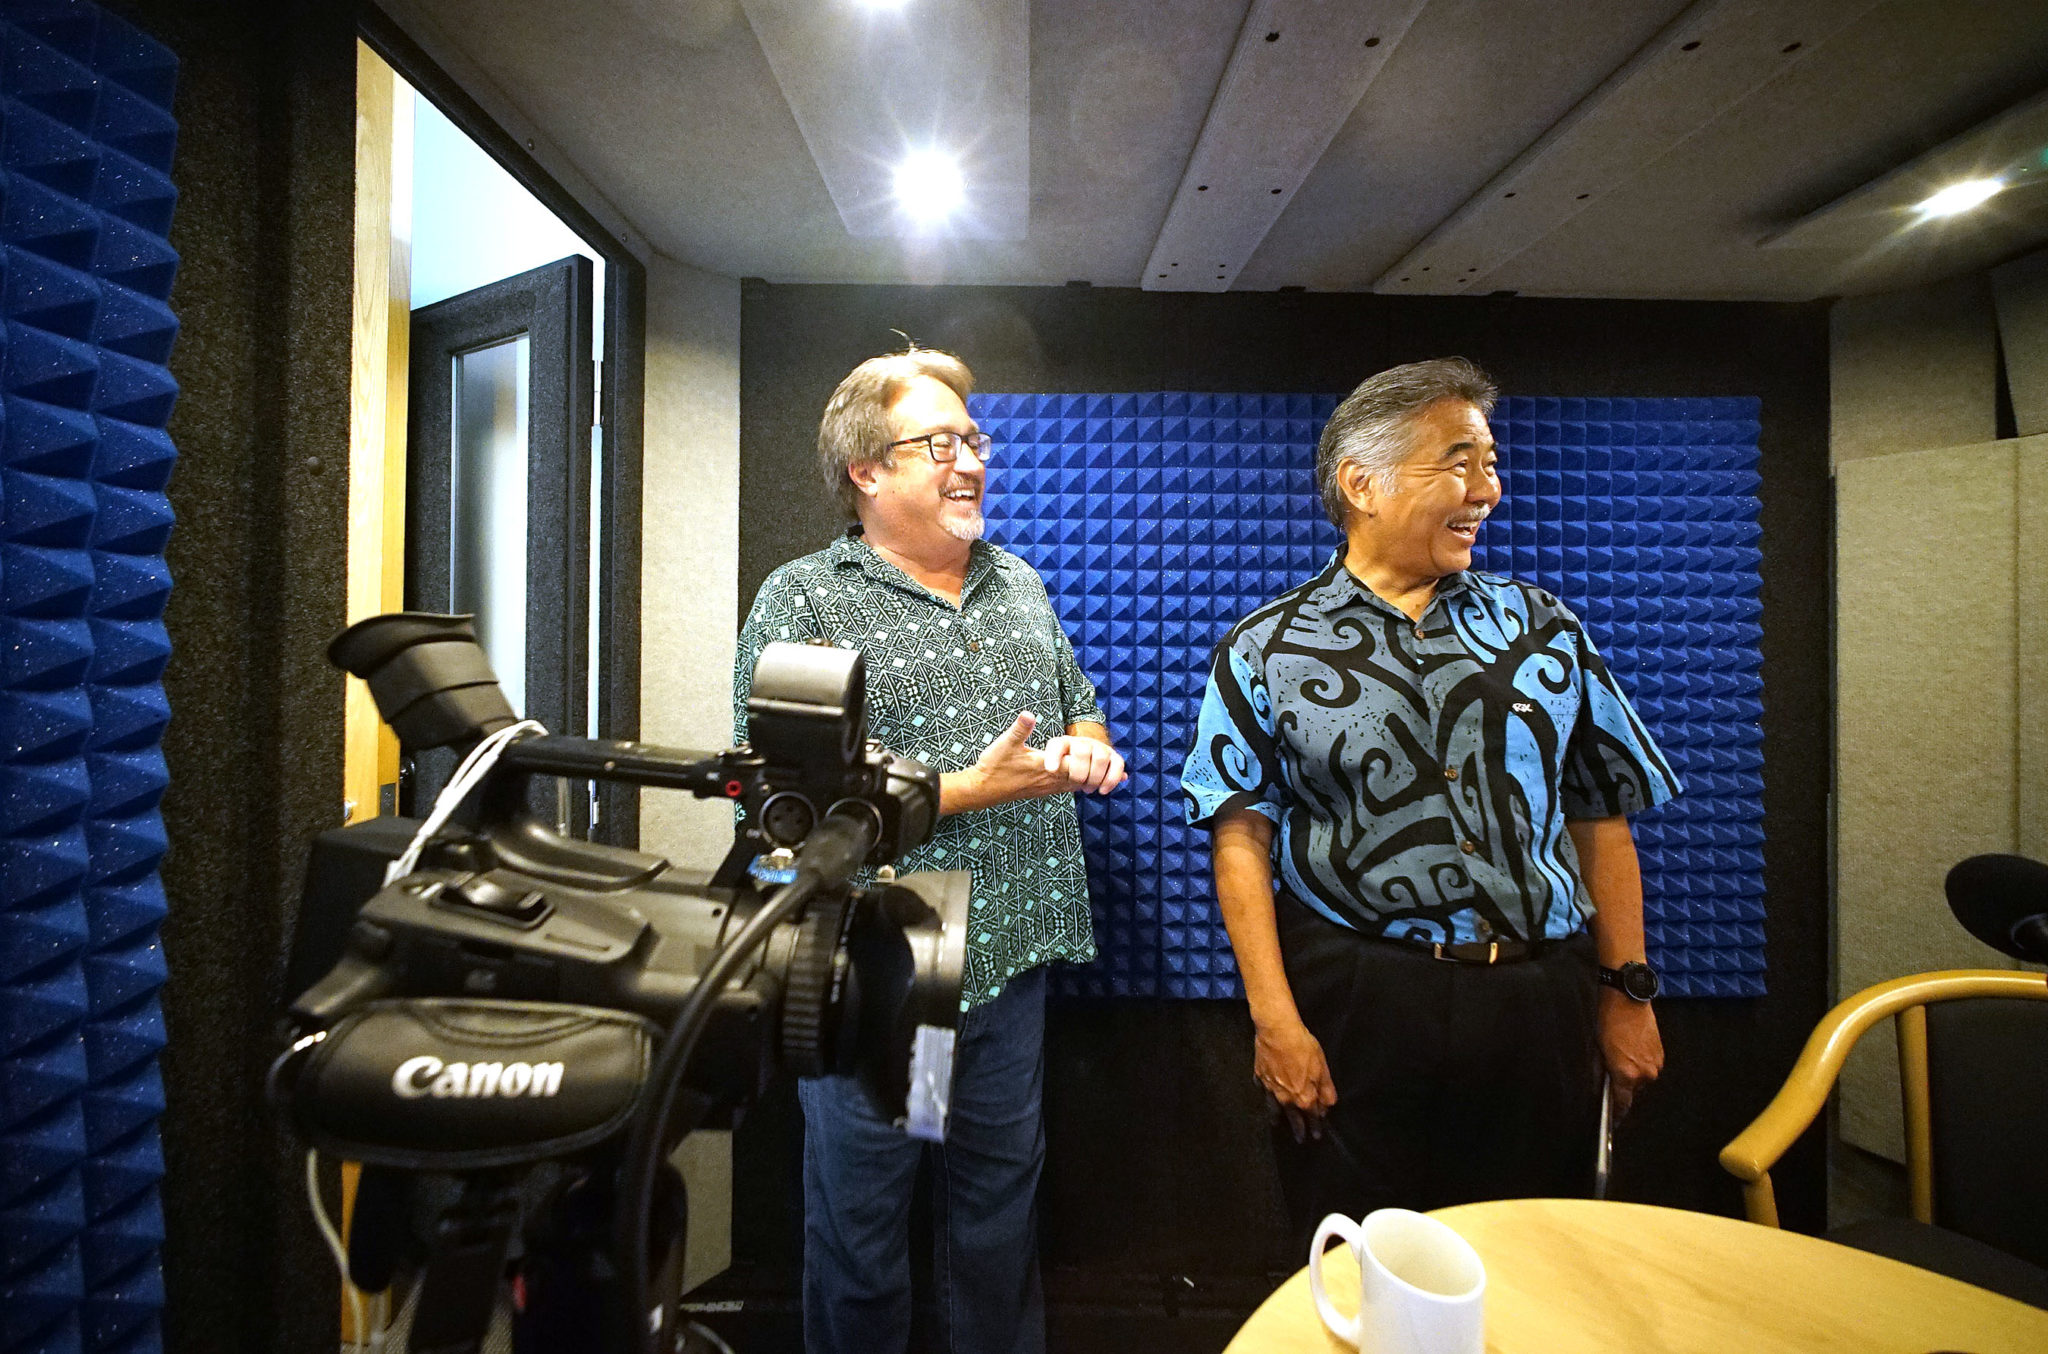 Cindy McMillan stands outside of our whisper room while Governor David Ige gets ready with Chad Blair for our recording of our podcast. Governor Ige was in office for an editorial board meeting.